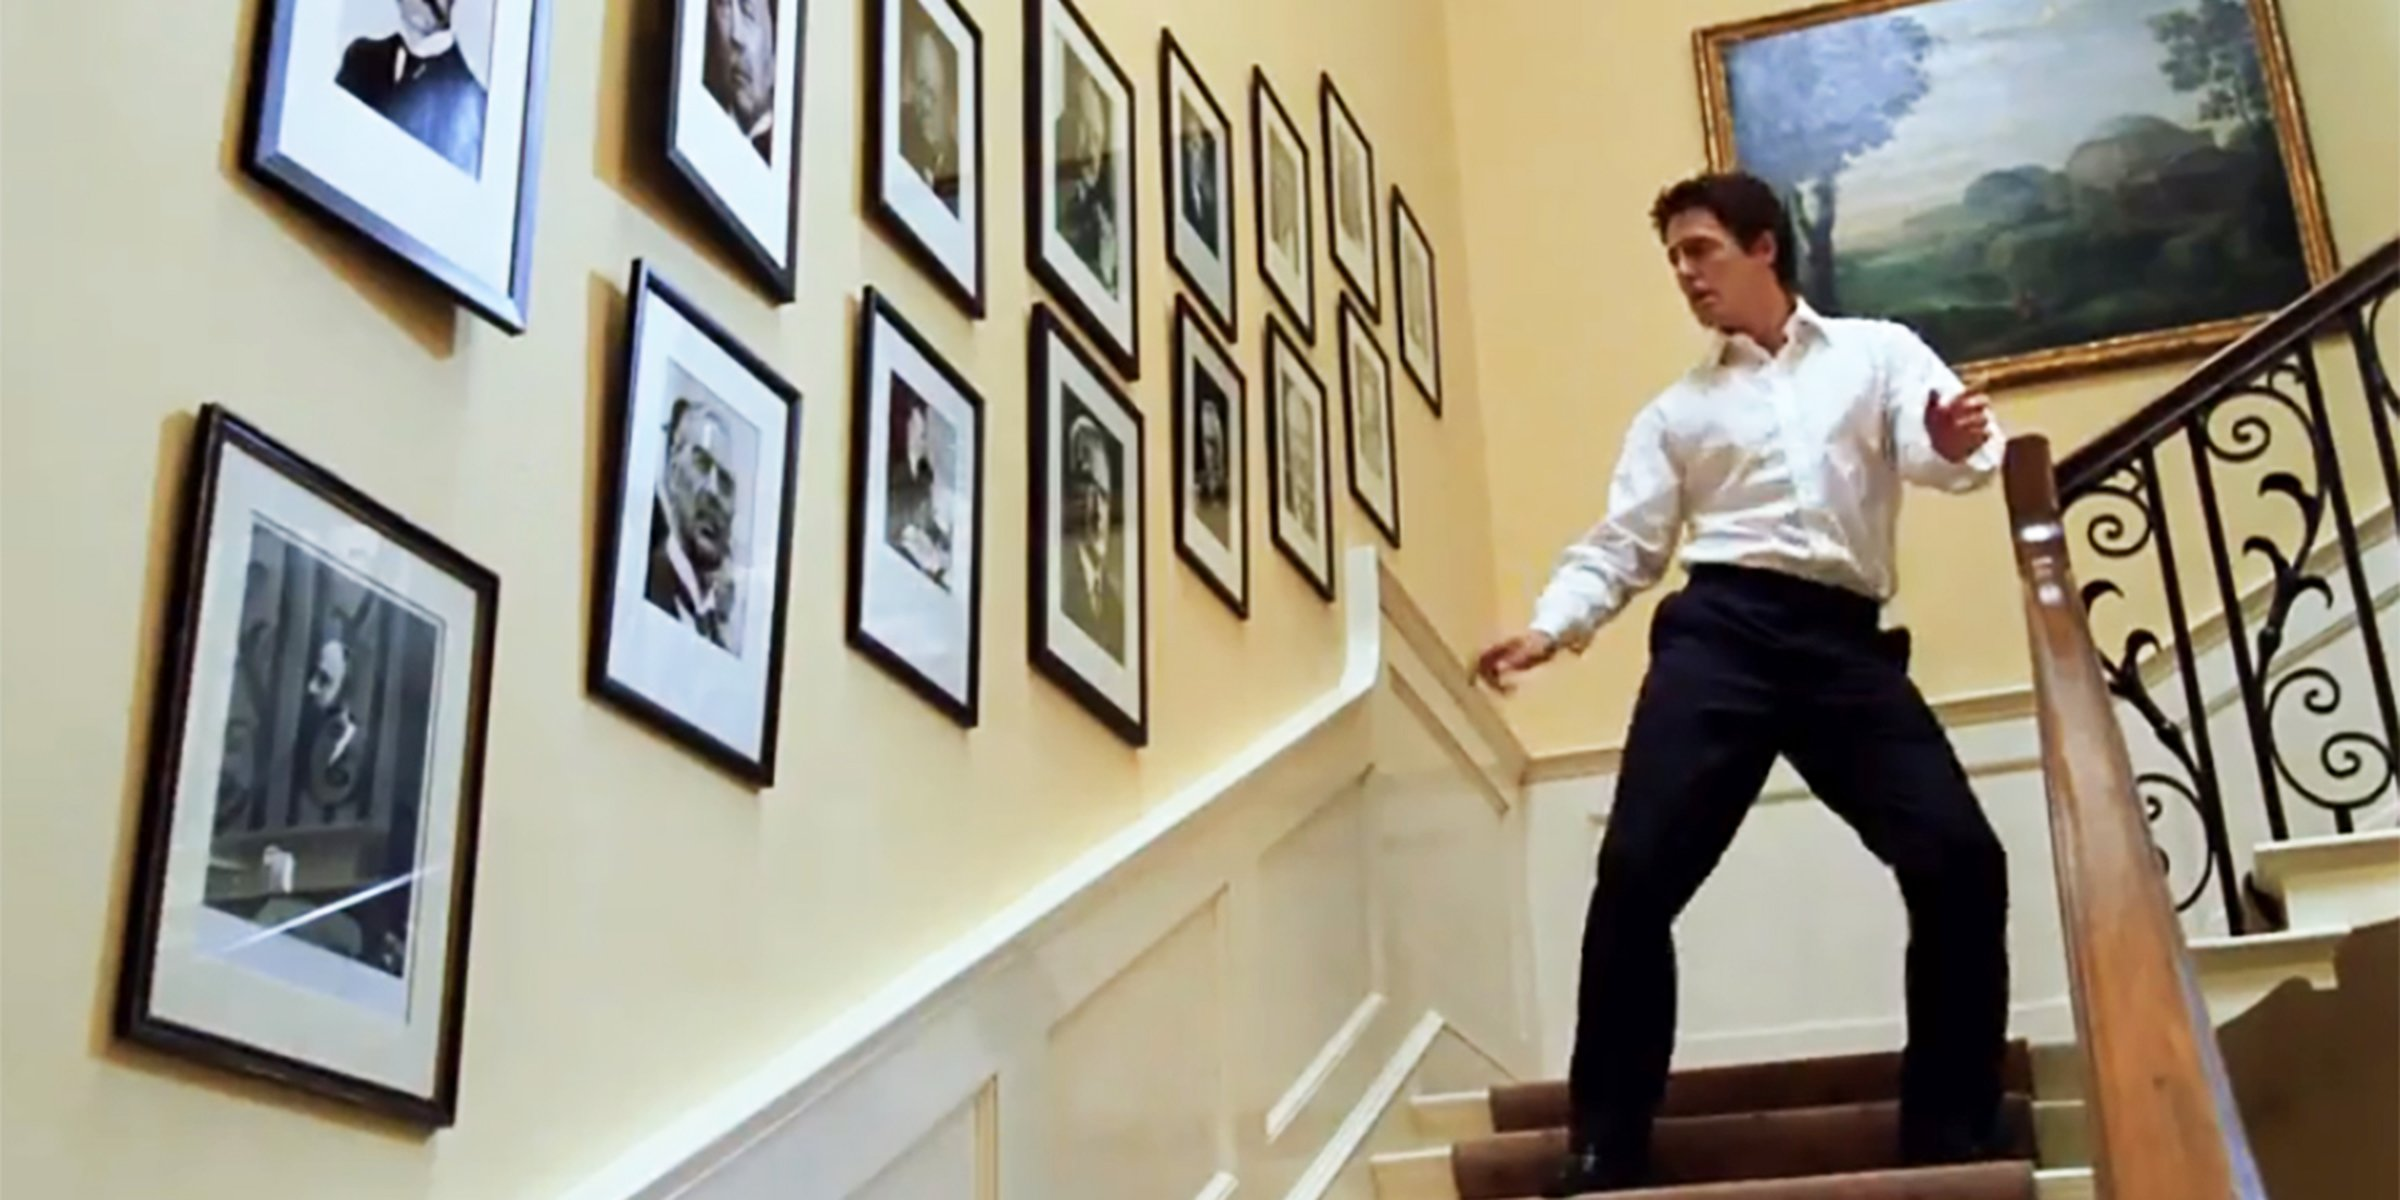 Hugh Grant dancing on stairs in Love Actually